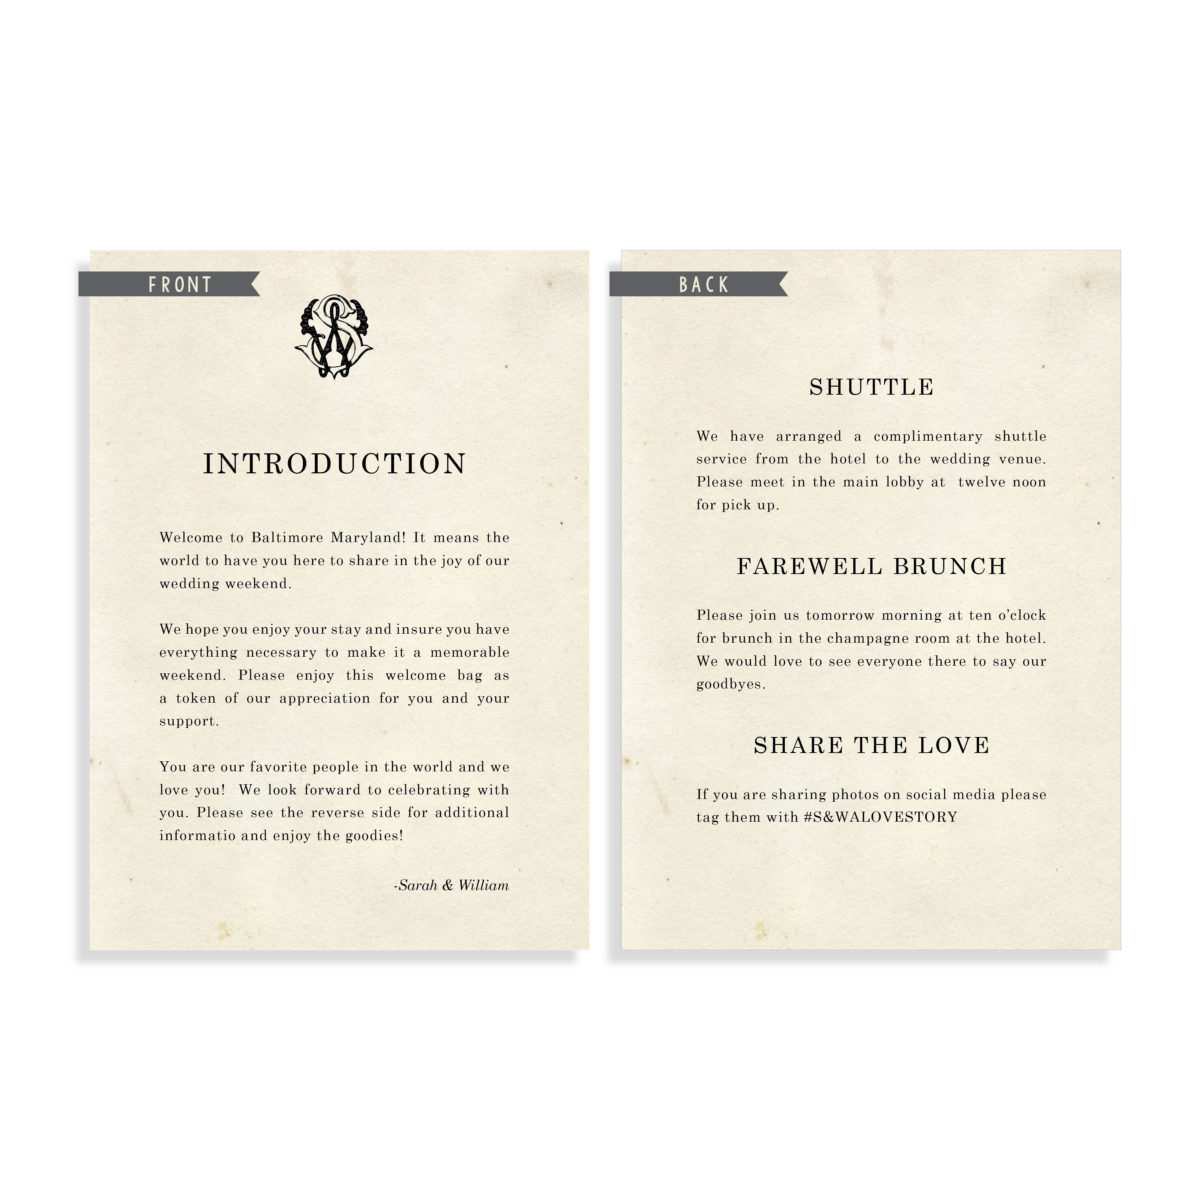 Literary Wedding Welcome Note | #LiteraryWedding #VintageWedding